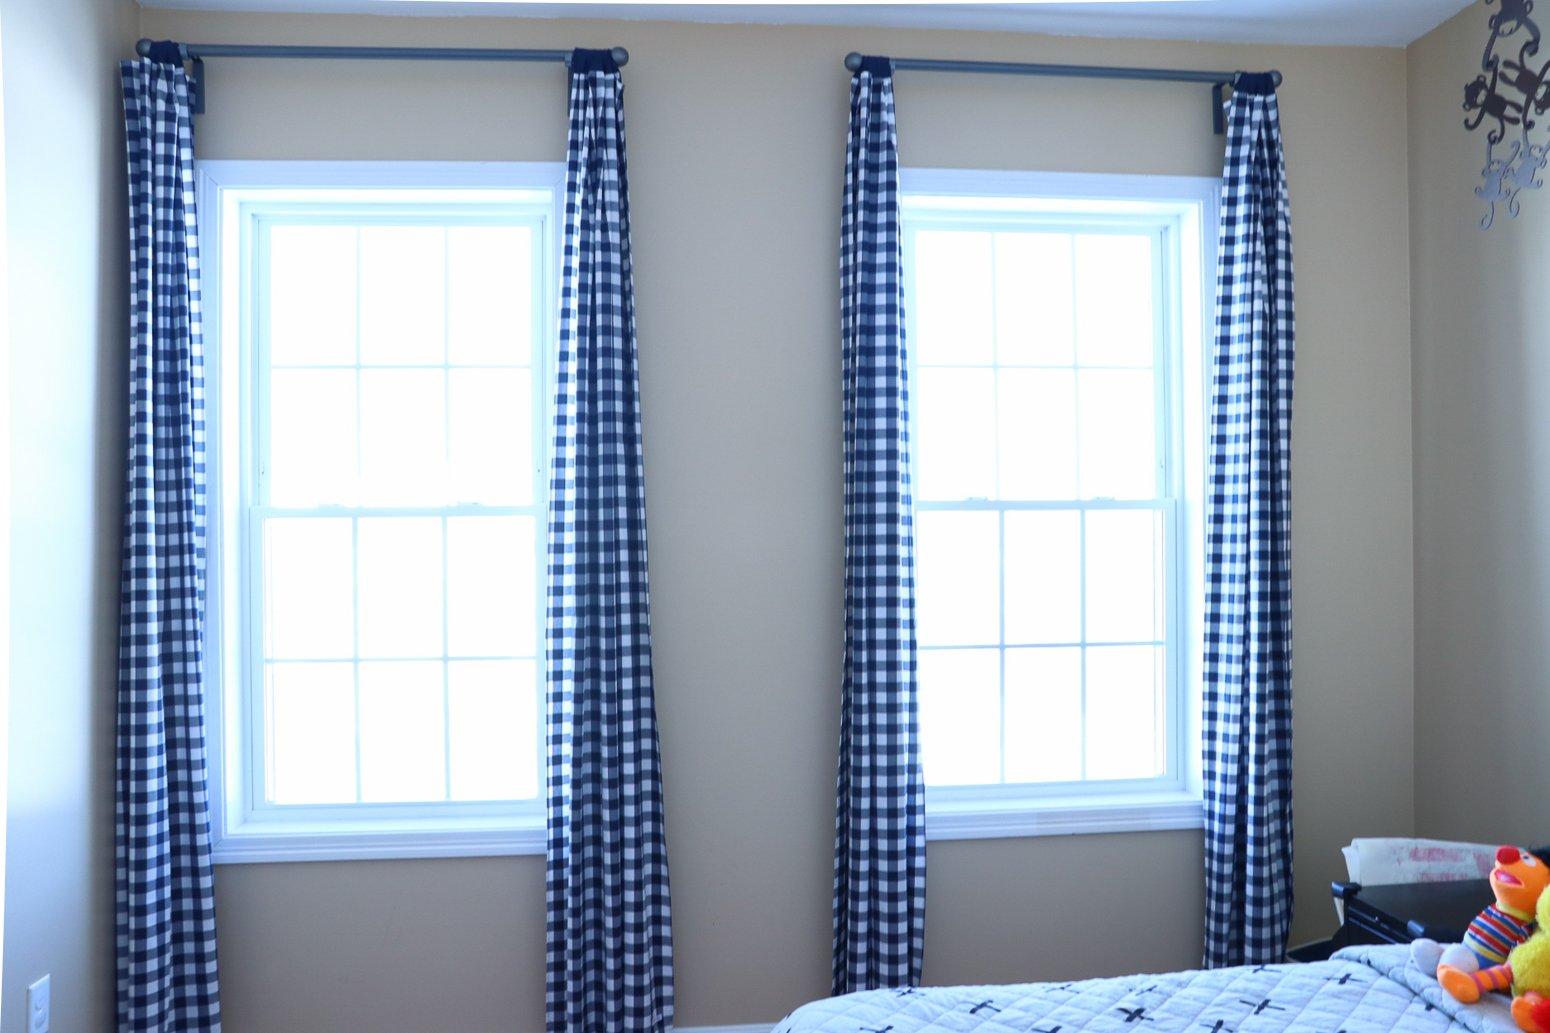 design mistakes to avoid-hanging curtains incorrectly